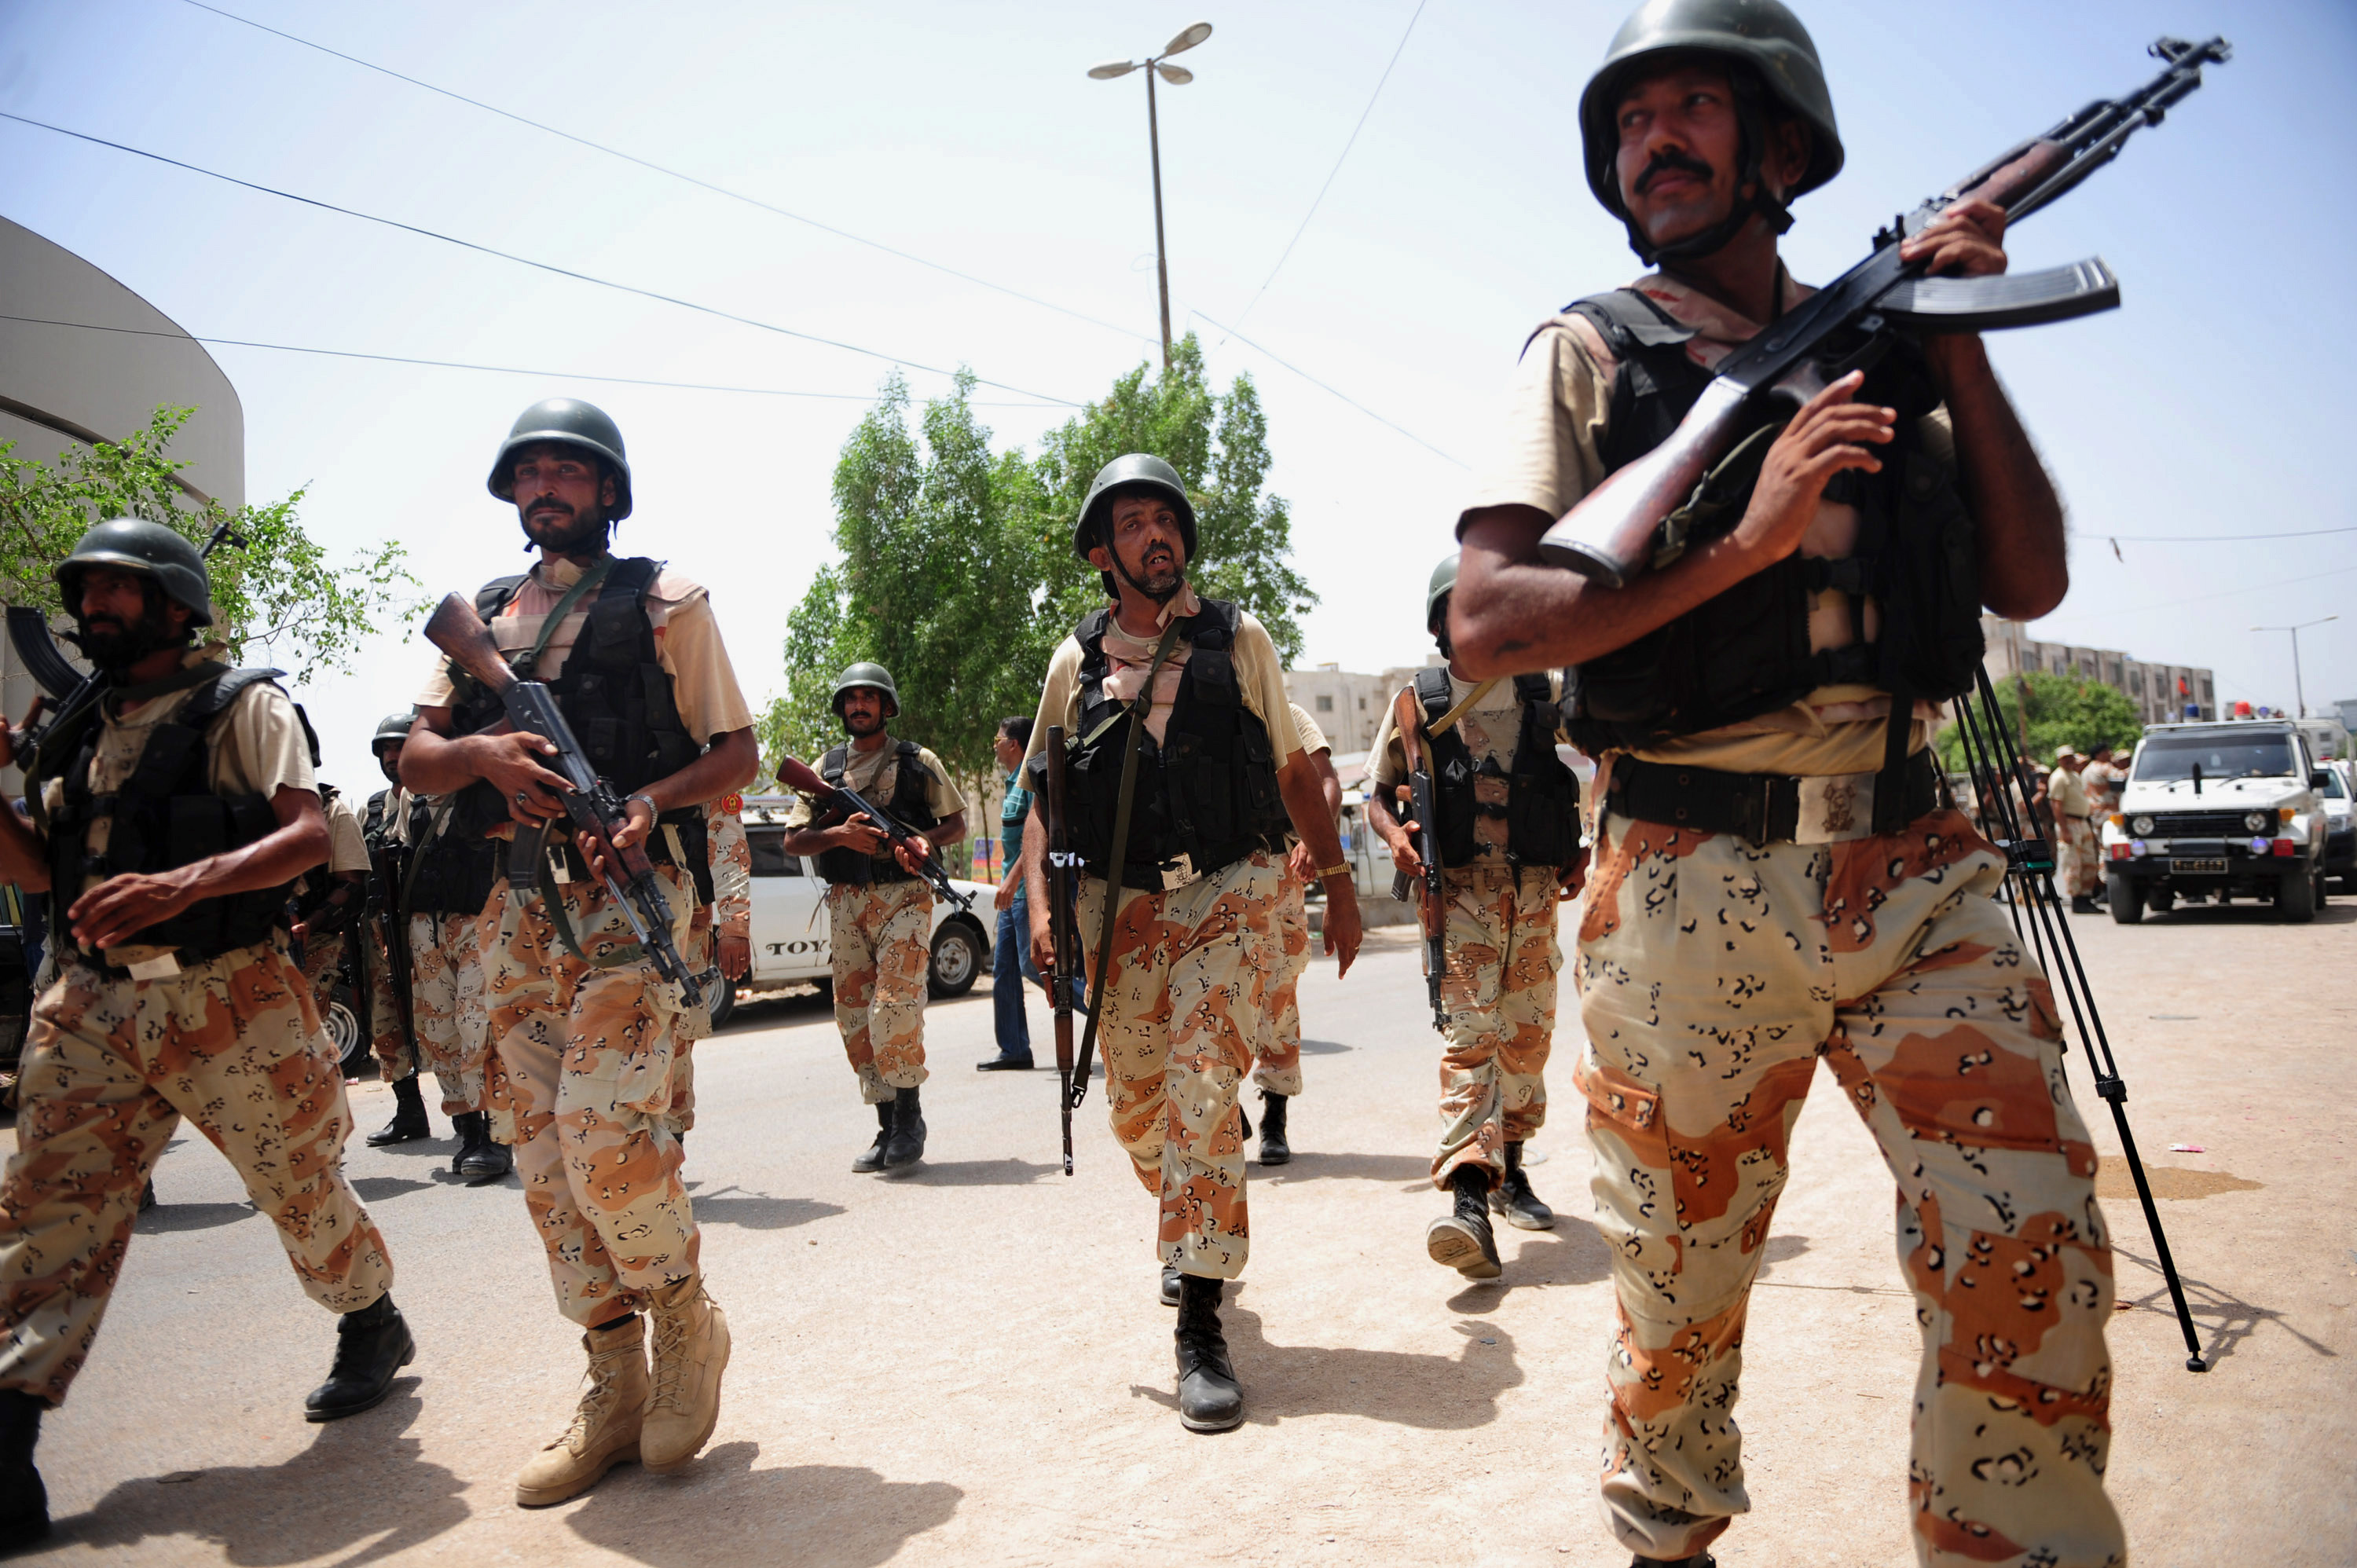 Pakistan rangers take part in a search operation after the firing incident near Karachi airport in Karachi on June 10, 2014. The second attack on Pakistan's Karachi airport in as many days ended without casualties, officials said, but with the escape of the two gunmen involved. AFP PHOTO/Rizwan TABASSUM